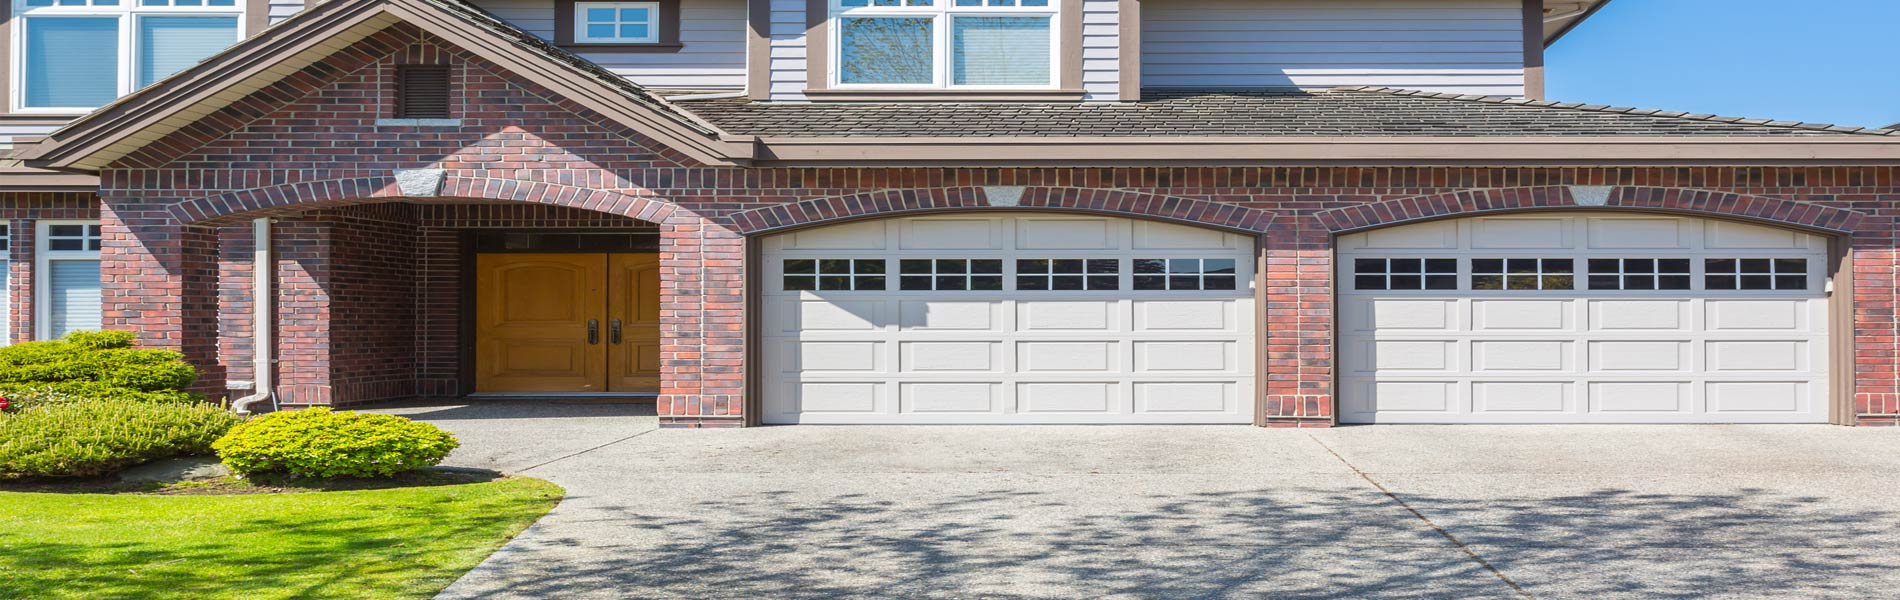 HighTech Garage Doors, Littleton, CO 303-647-4655